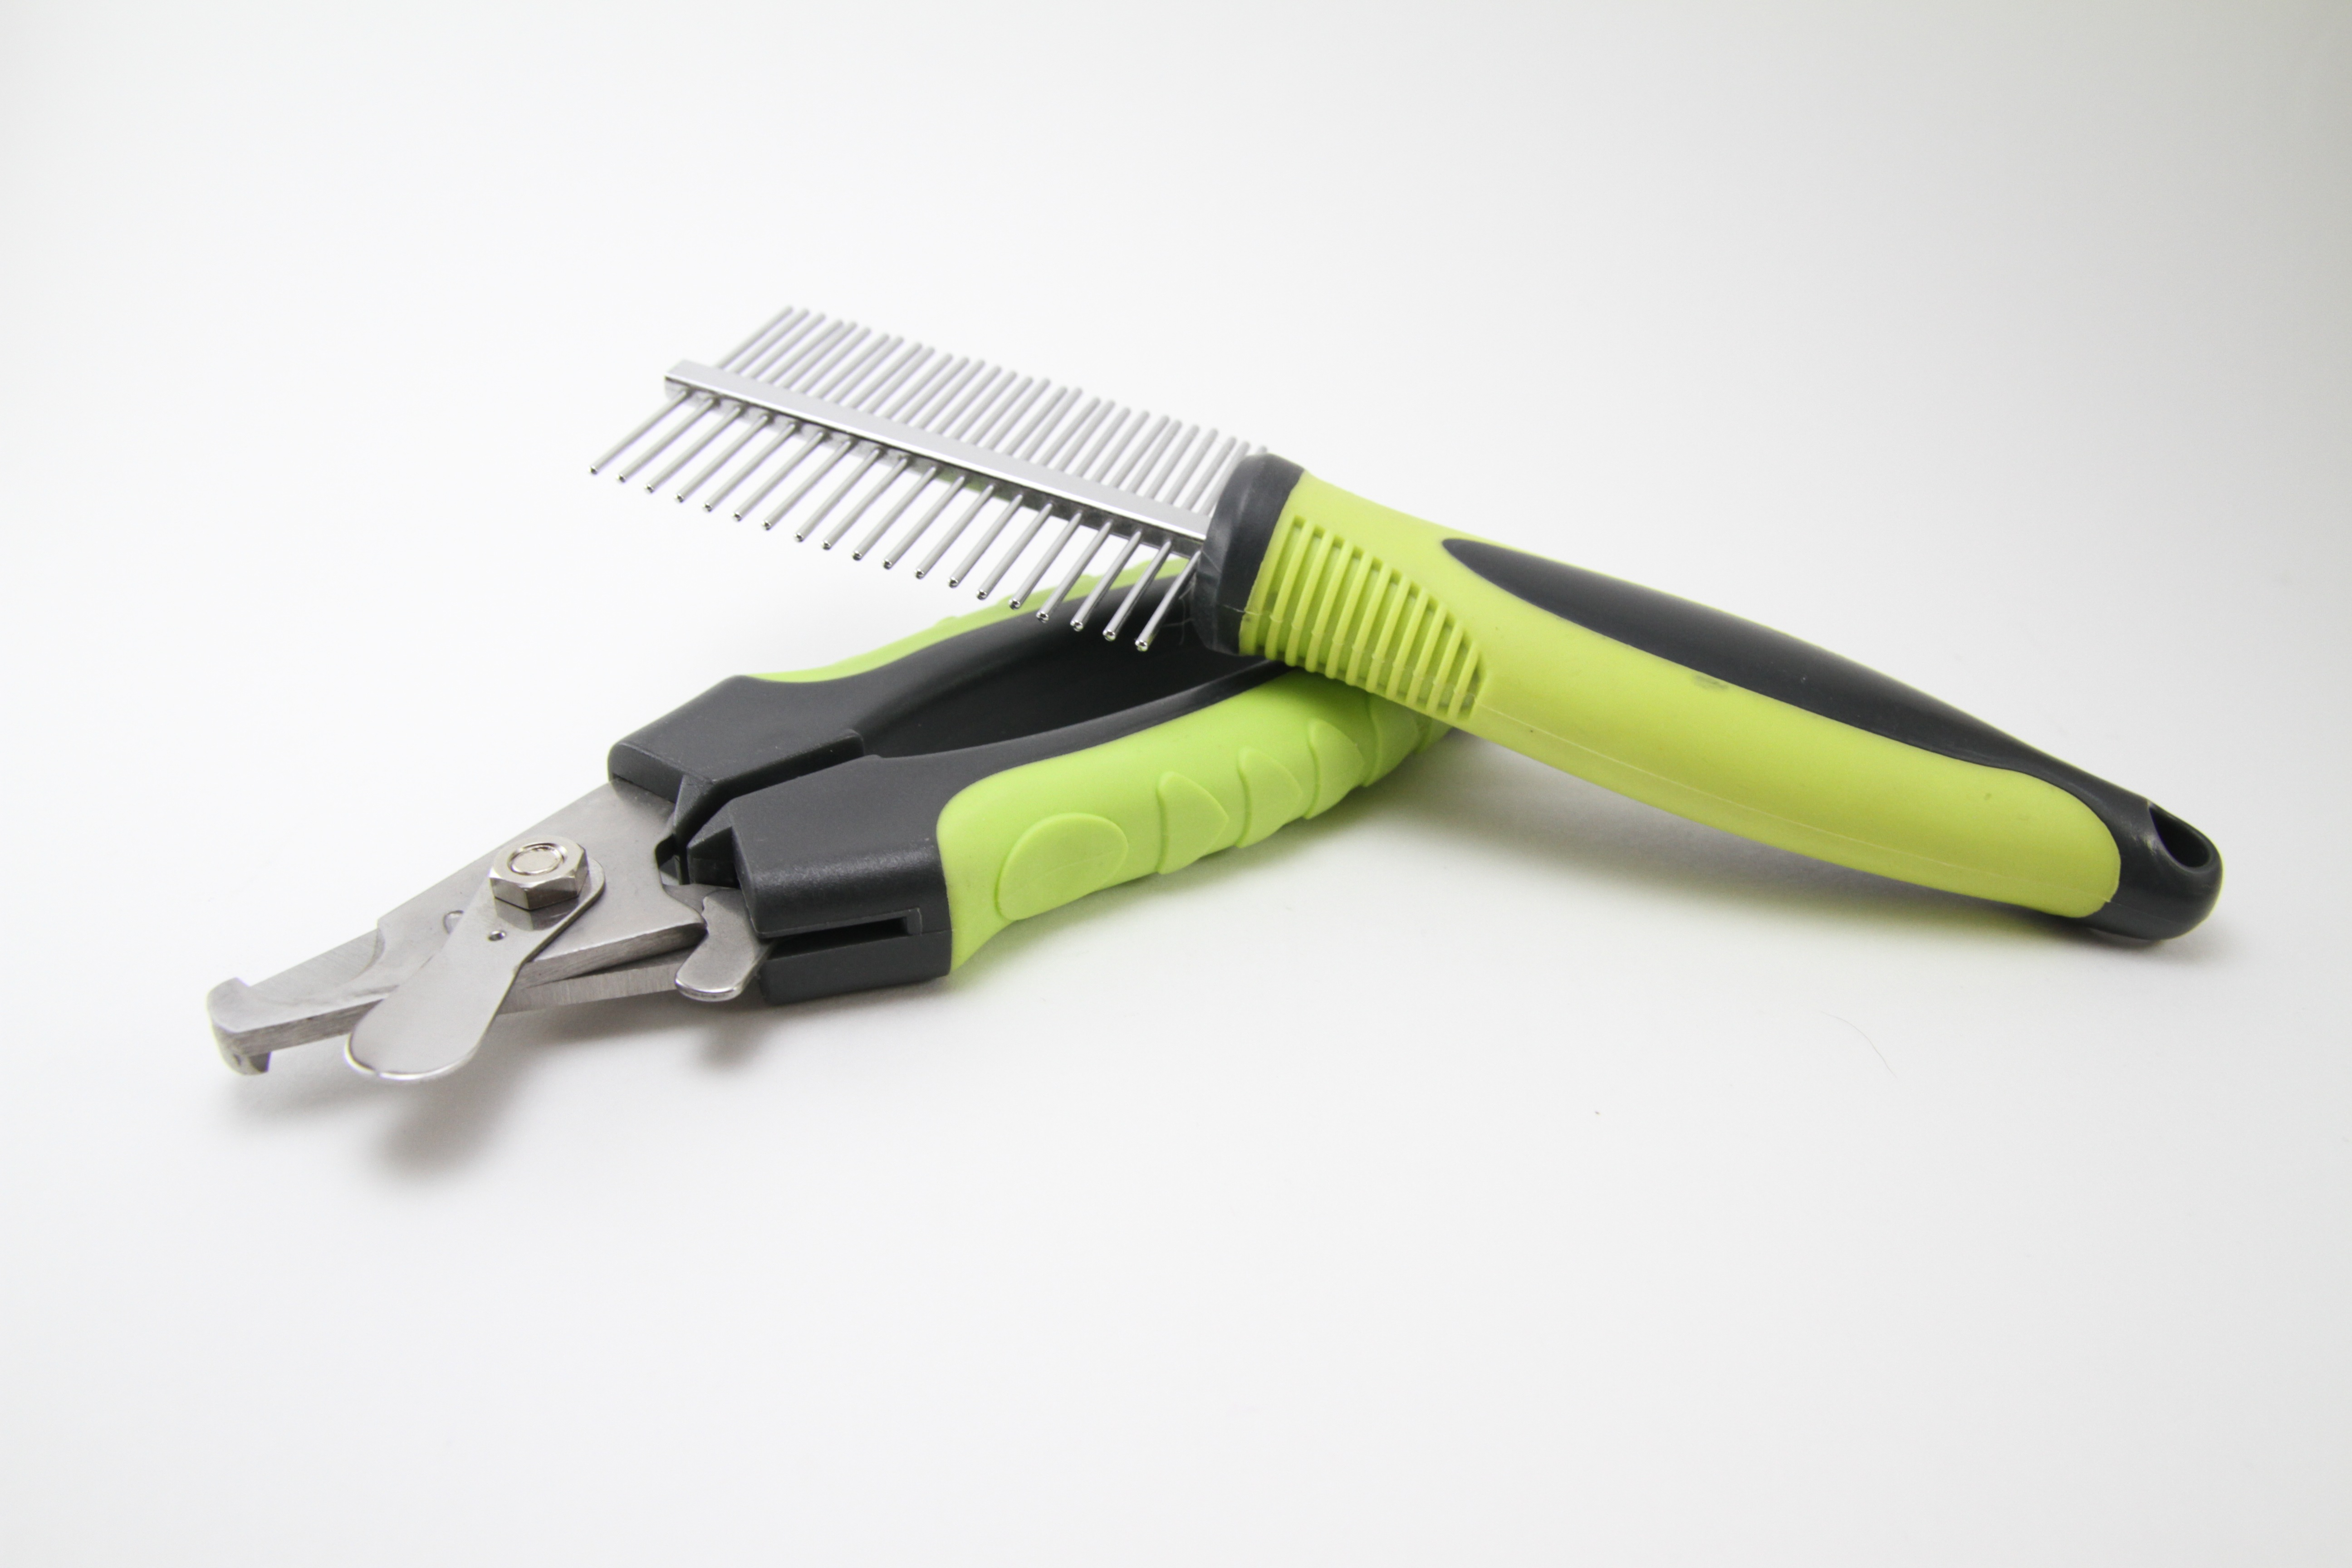 Dog brush & nail clippers, Brush, Canine, Clippers, Dog, HQ Photo